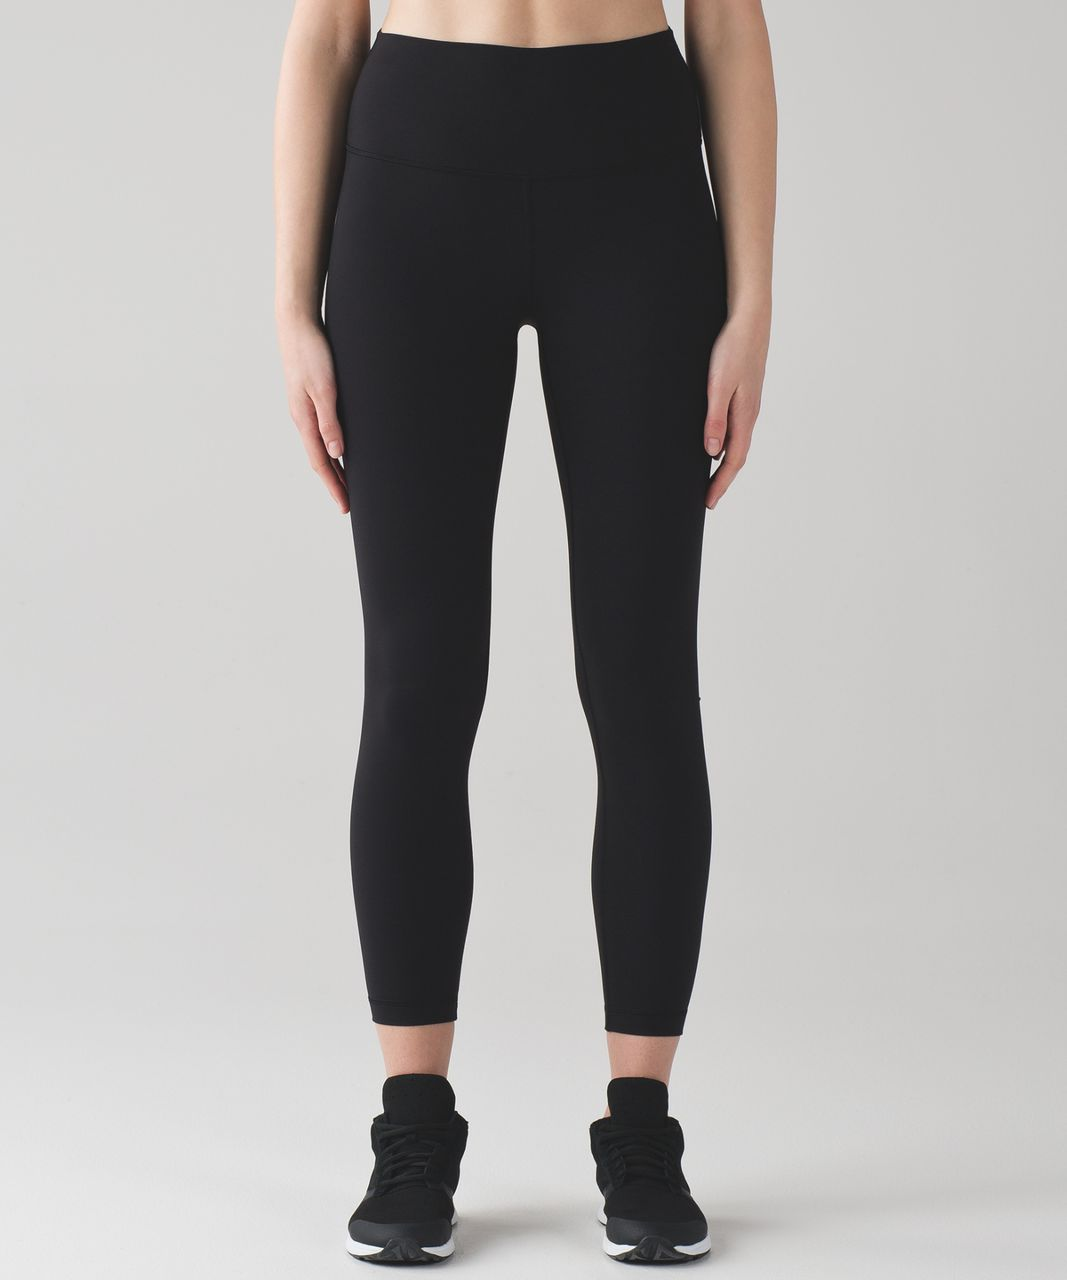 dfcb41600a Lululemon Wunder Under Hi-Rise 7/8 Tight (Full-On Luxtreme) - Black - lulu  fanatics